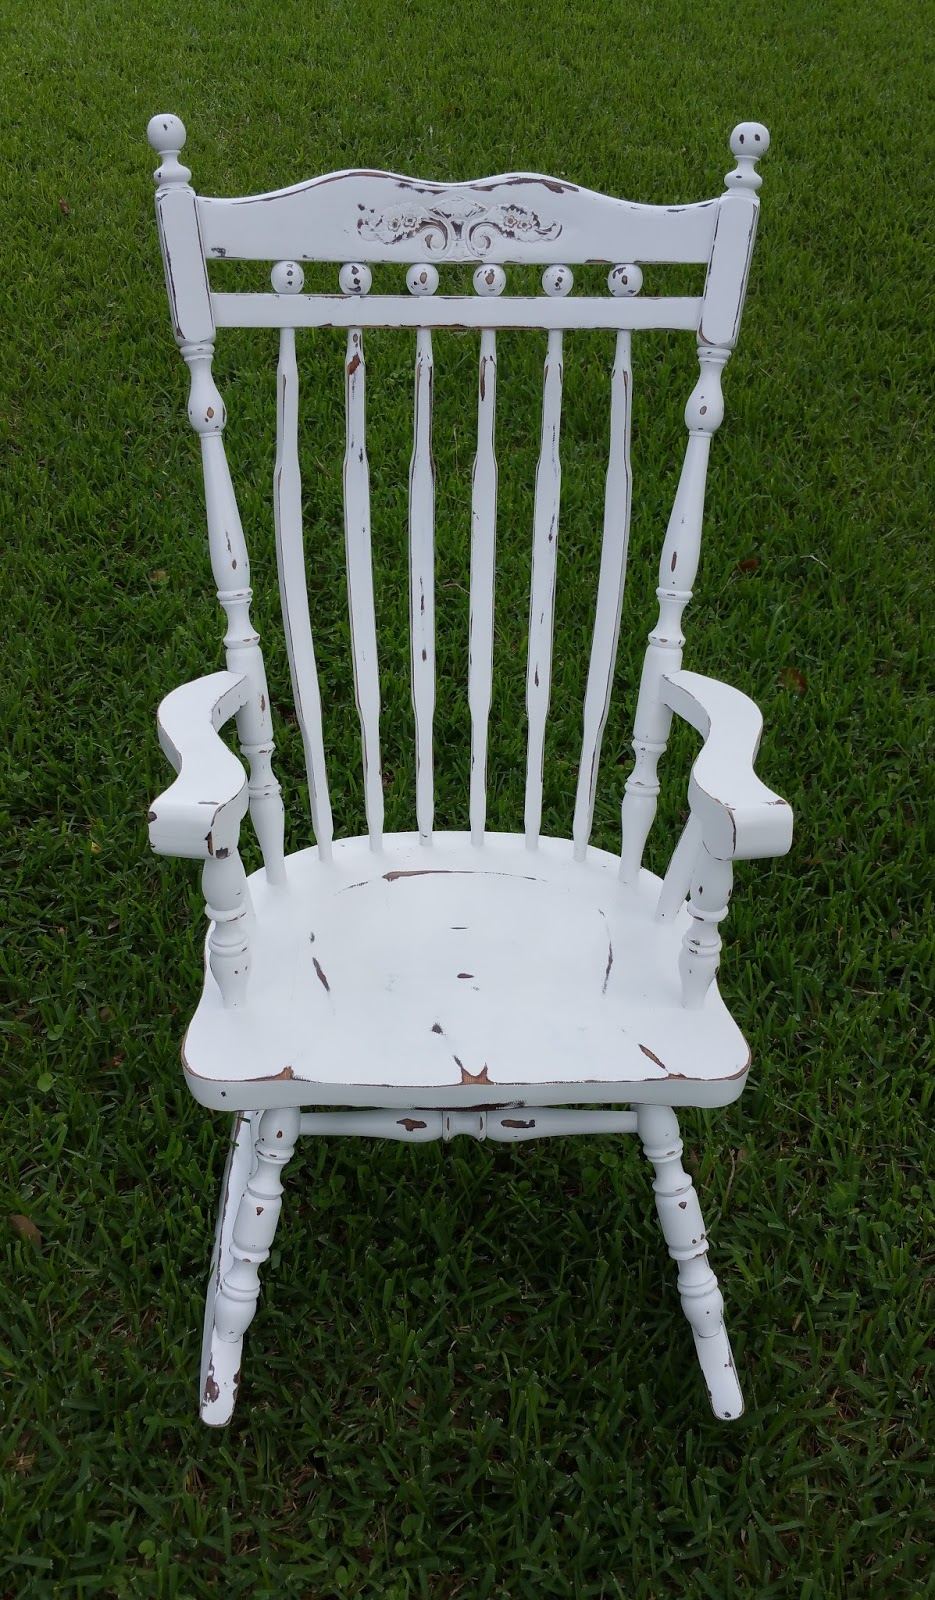 Pleasing Mendlbarr Rocking Chairs Every Home Should Have At Least Squirreltailoven Fun Painted Chair Ideas Images Squirreltailovenorg